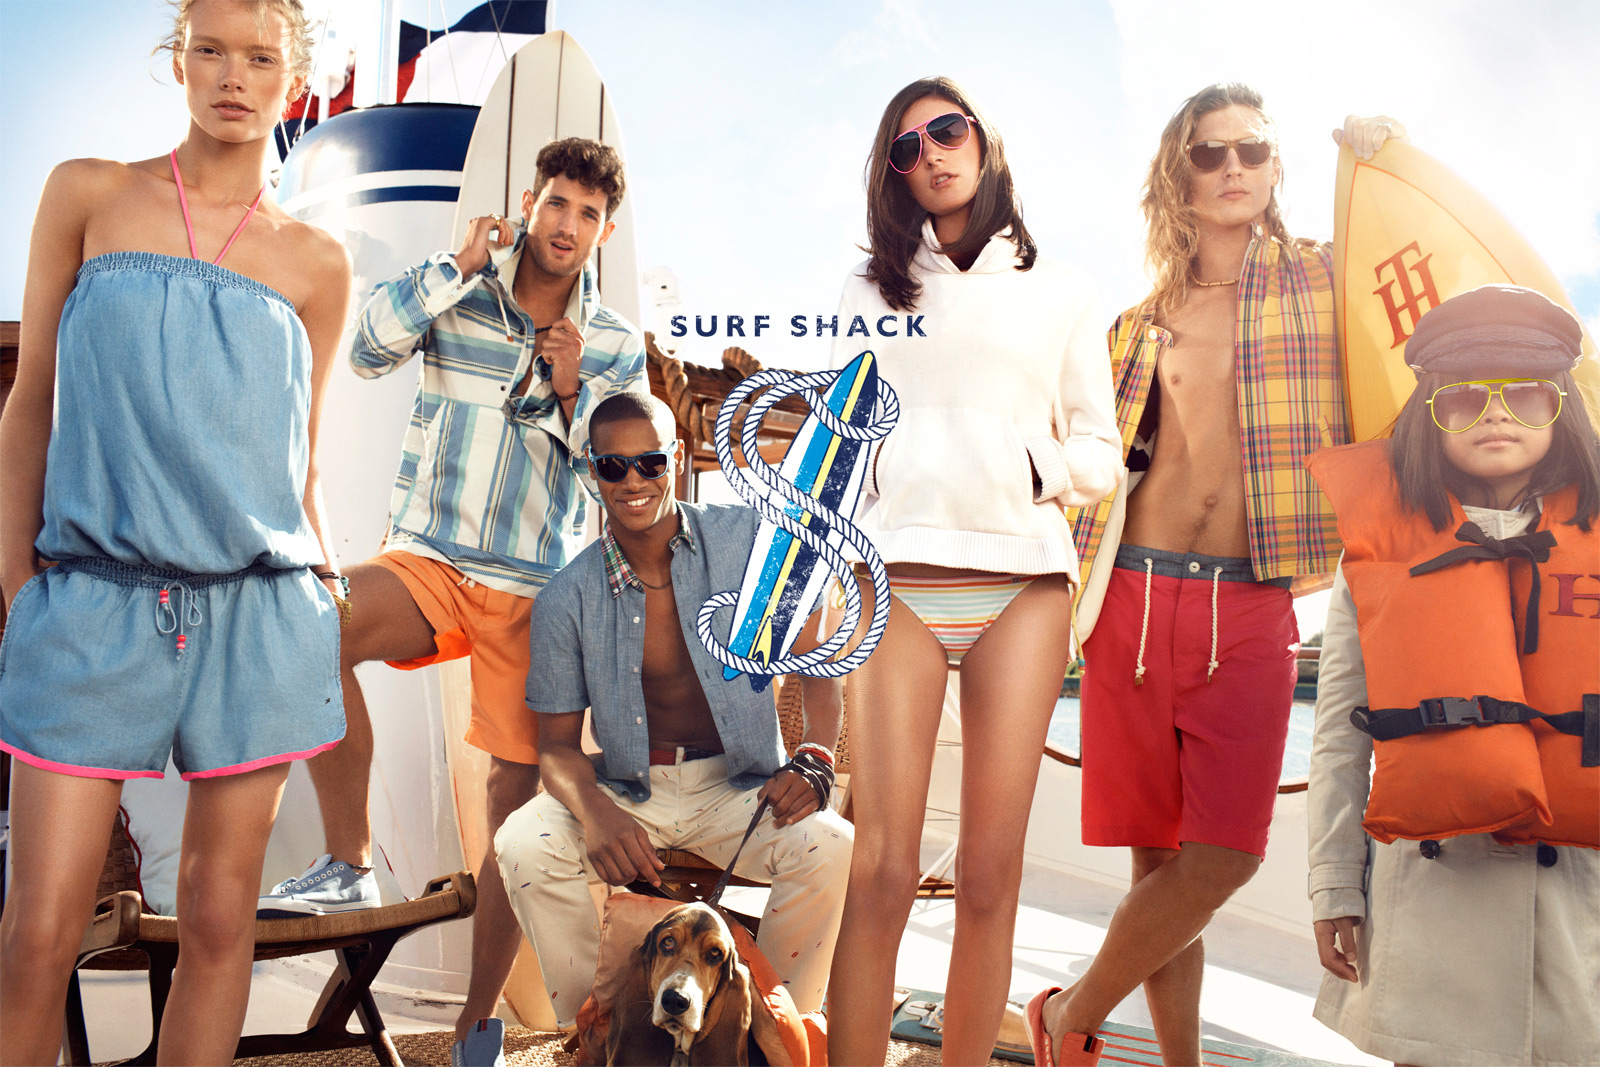 Tommy Hilfiger Summer 2013: Surf Shack Collection